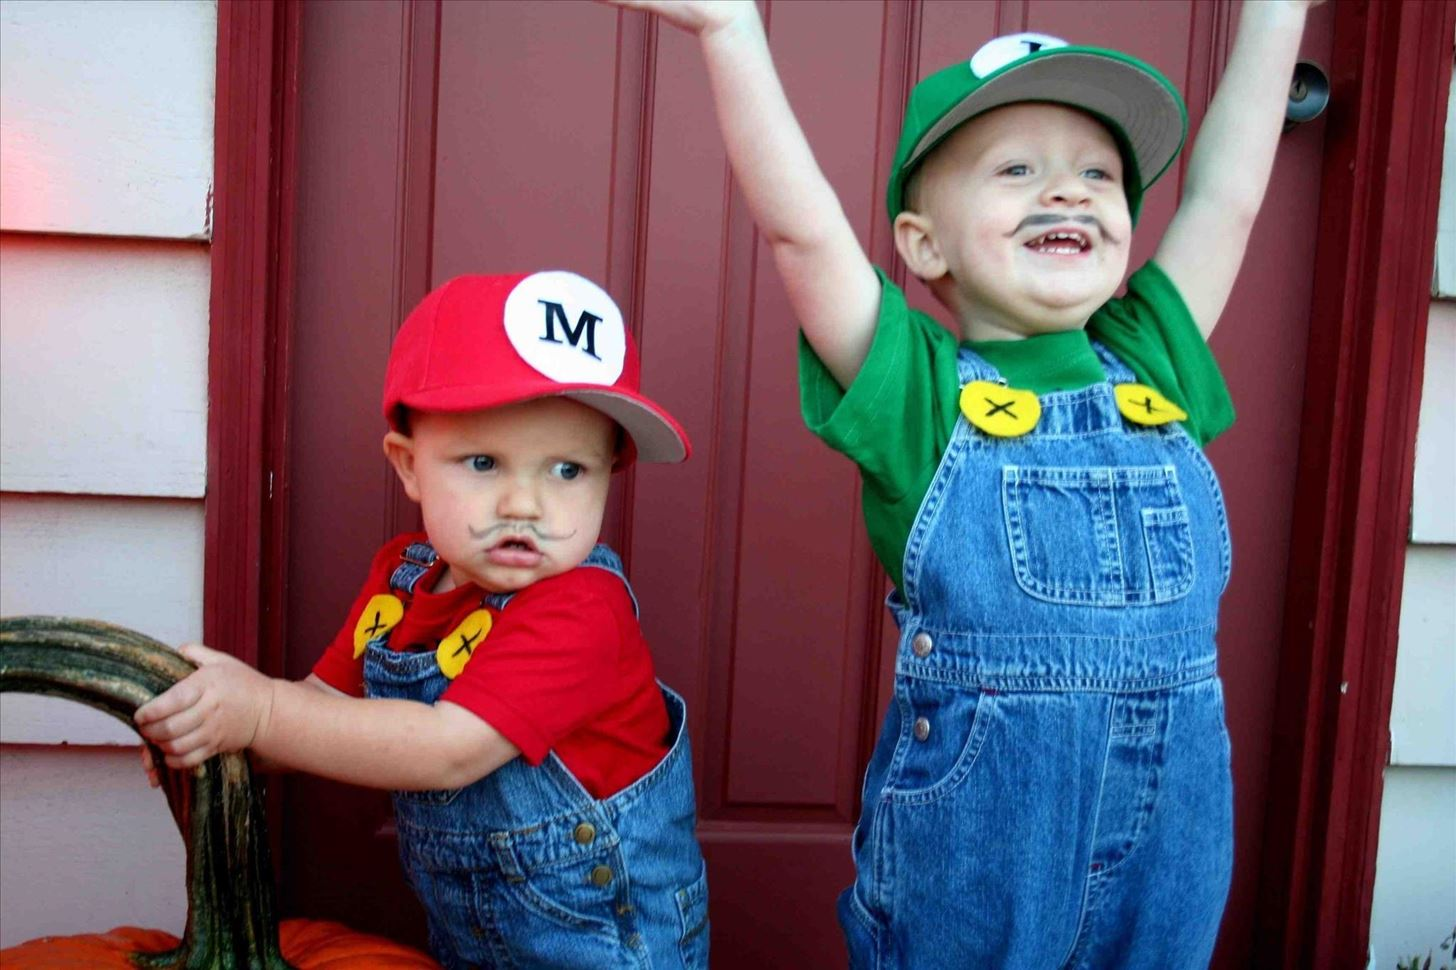 10diy super mario brothers costume - Halloween Costumes Diy Kids